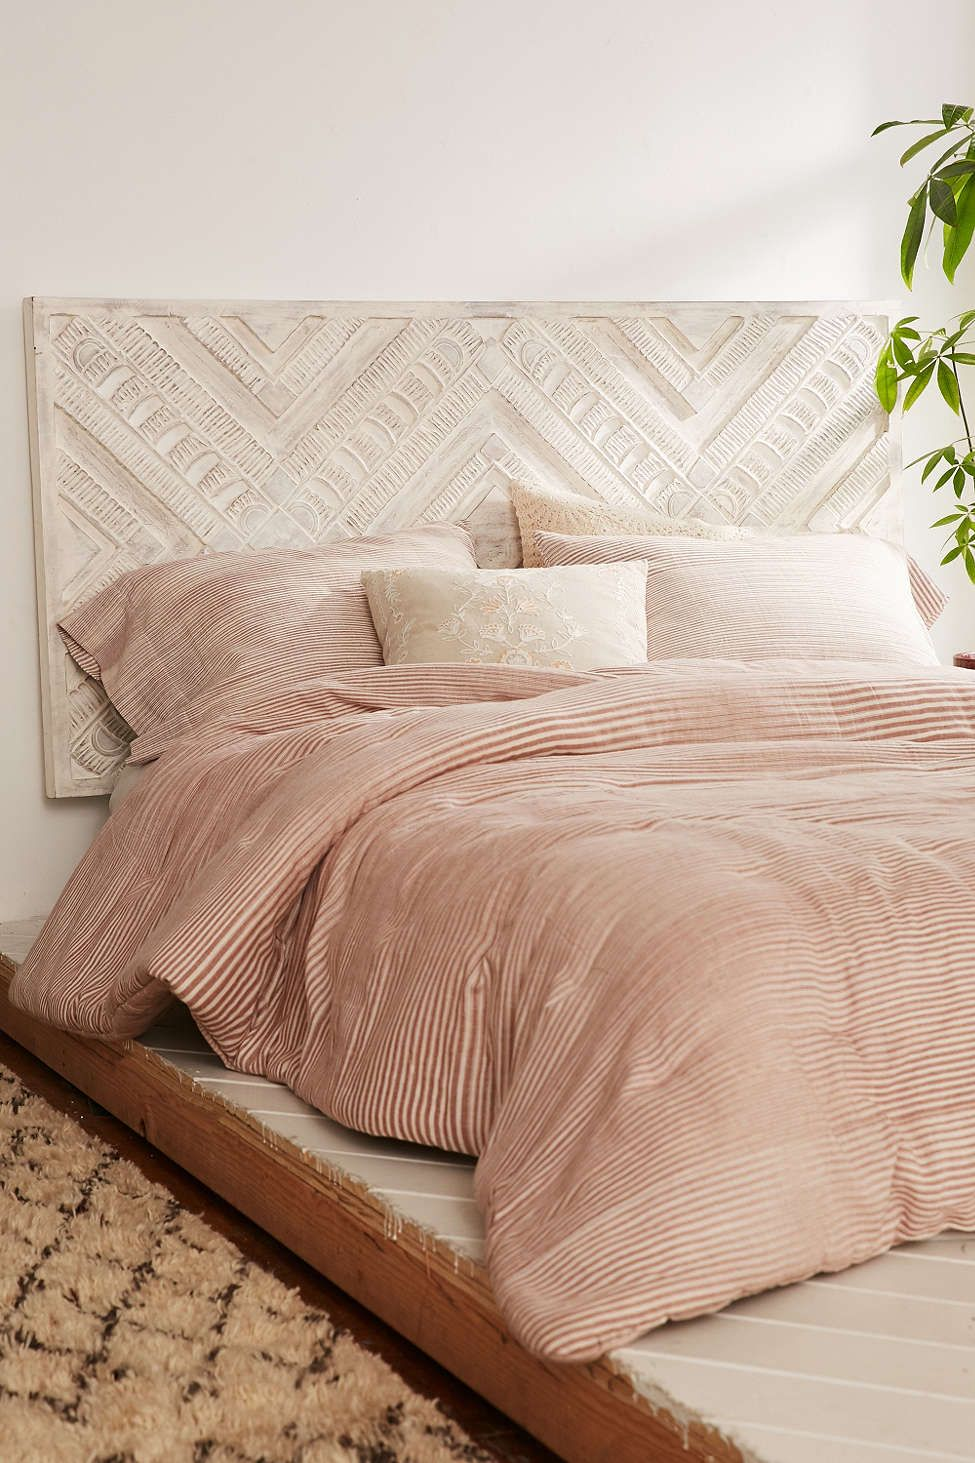 Bettsofa Pinterest Amira Carved Wood Headboard Urban Outfitters Interiores